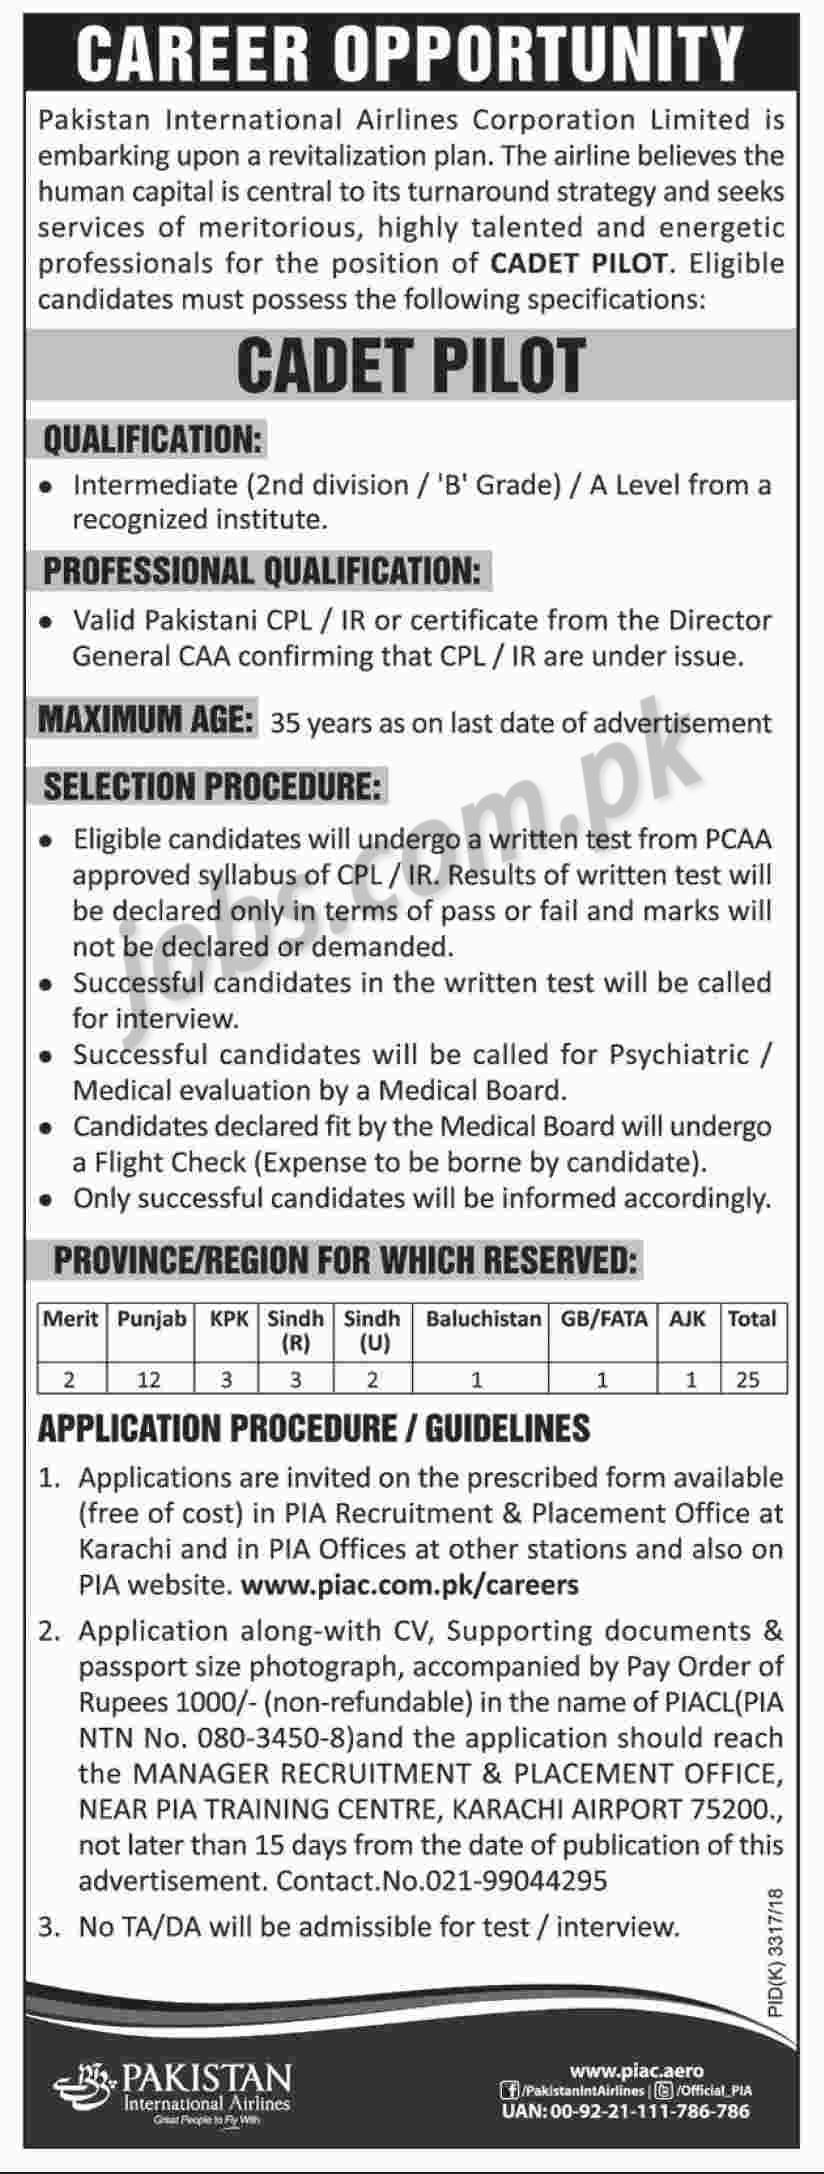 PIA Jobs 2018 for 25+ Cadet Pilots on 4 March, 2018 | Paperpk Jobs